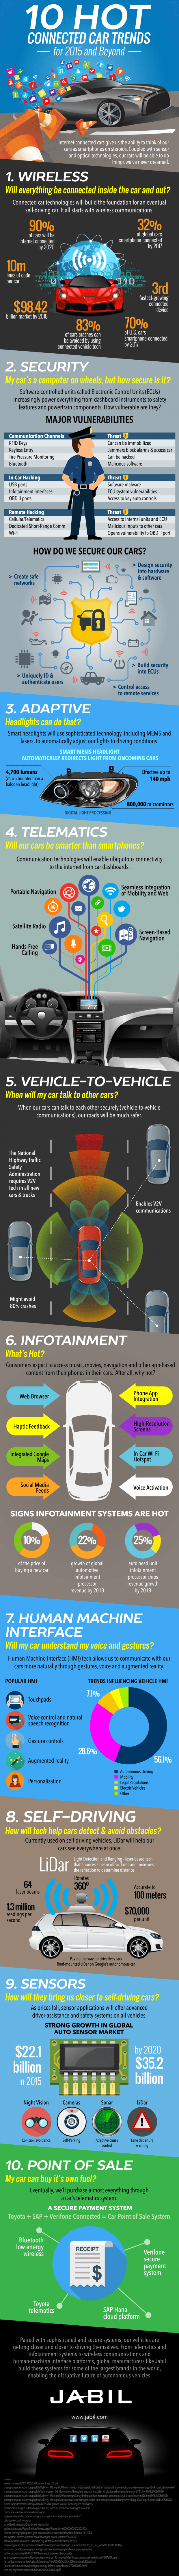 Connected-Cars-Infographic-v5-620x8910-min